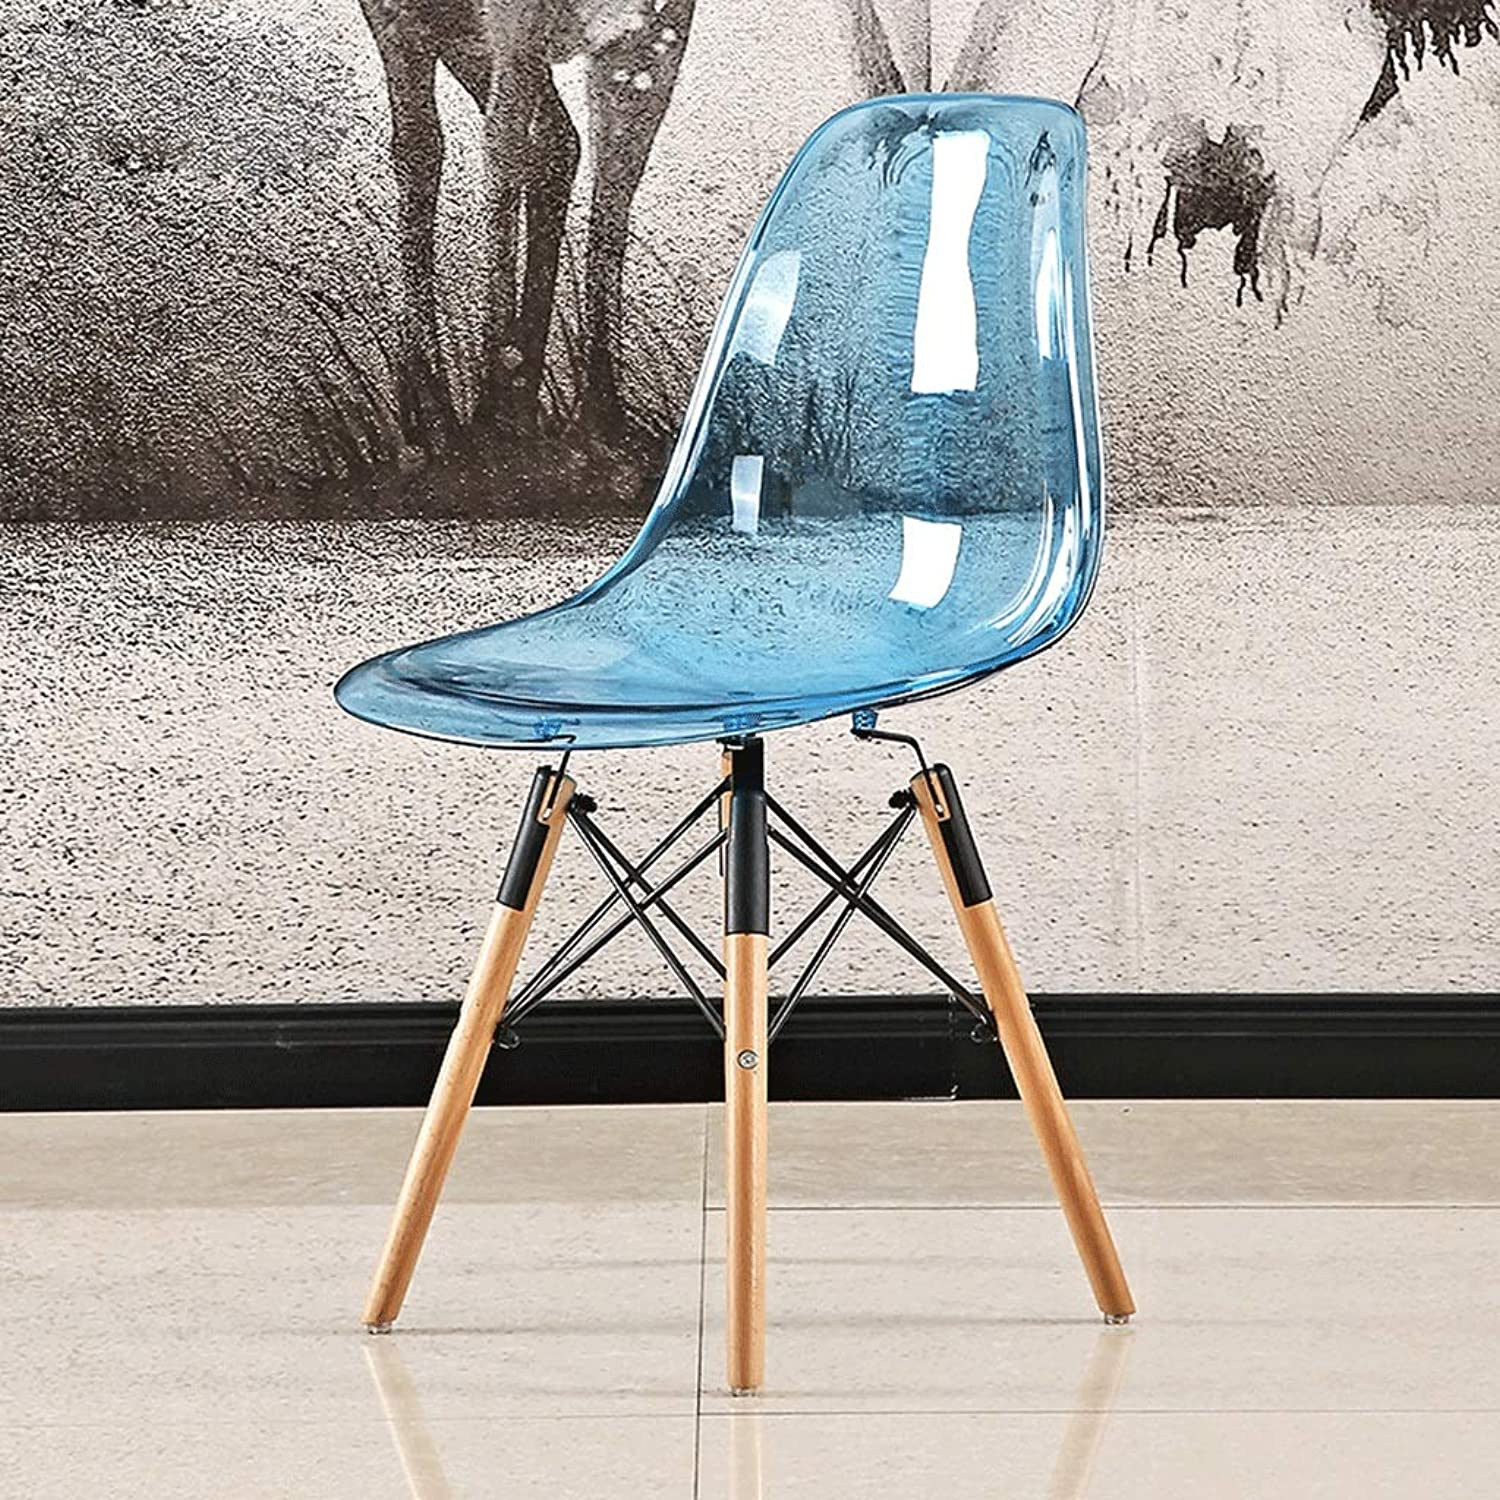 Zcxbhd Transparent Chair Retro Nordic Dinette Fashion Comfy Seat Creative Solid Beech Wooden Legs PC Plastic Stool (color   Transparent bluee)